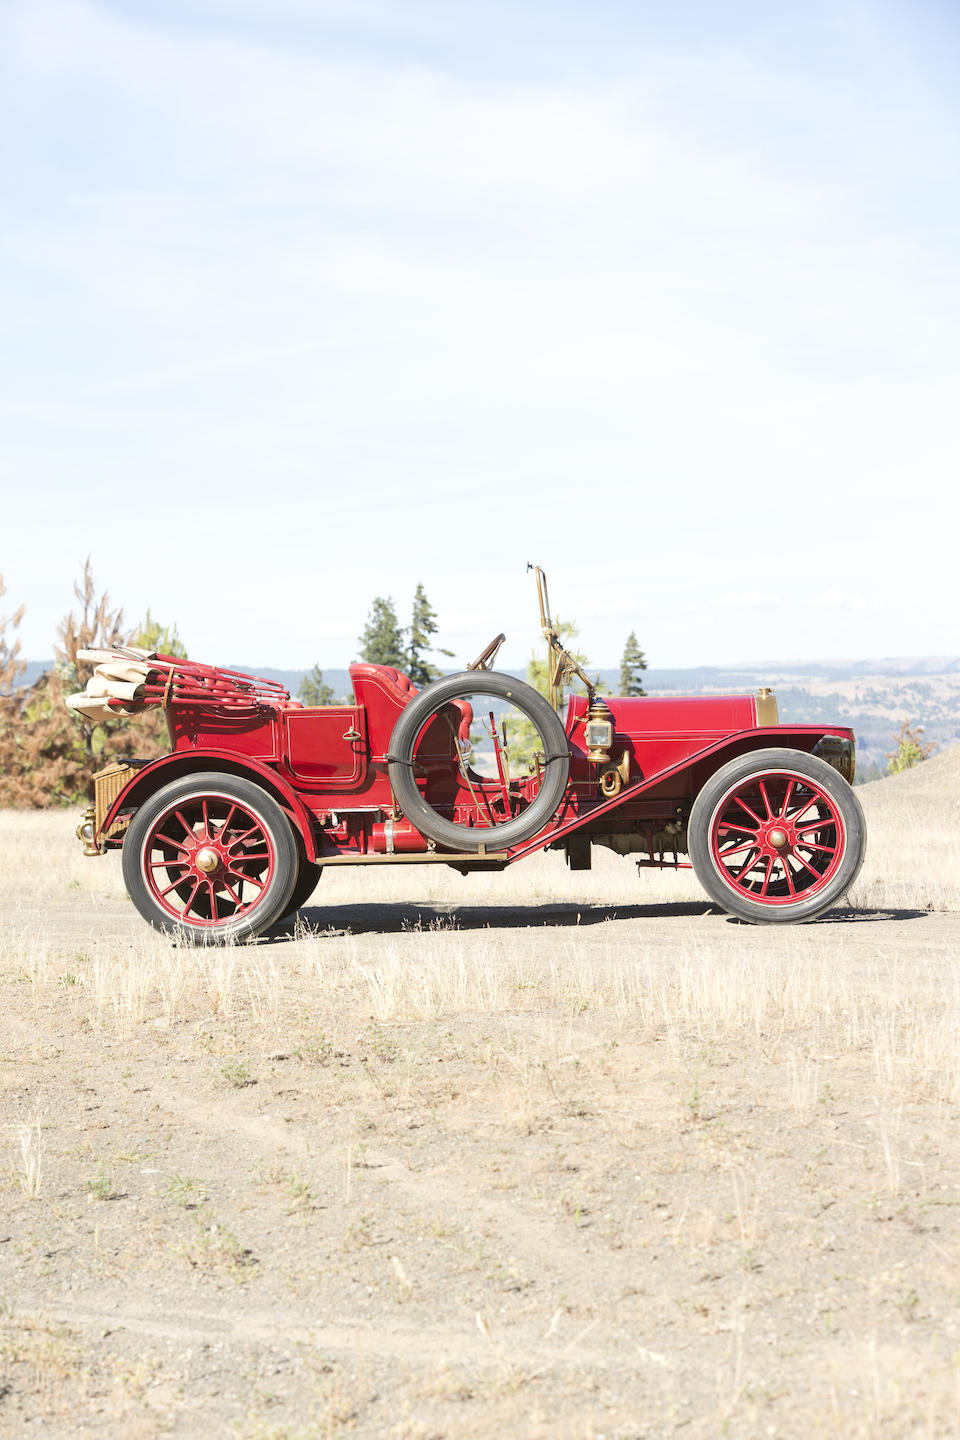 <i>From the Robert Ullrich Collection</i><b><br />1910 KISSEL KAR MODEL D-10 50HP 5-PASSENGER TOURING      </b><br />Chassis no. 1353